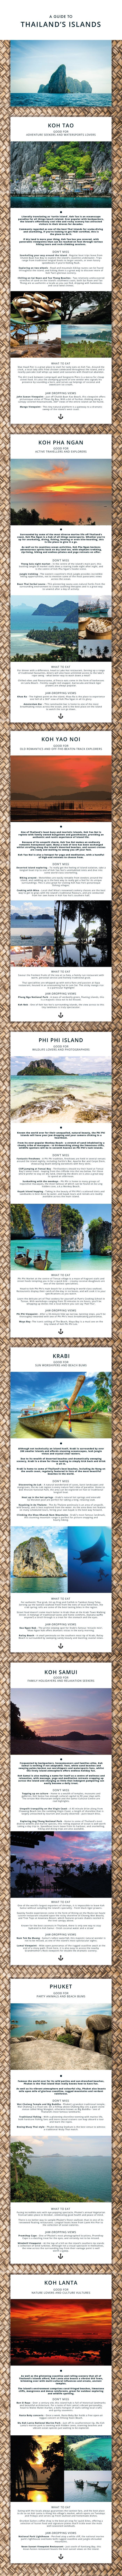 A Guide to Thailand's Islands #Infographic #Thailand #Travel